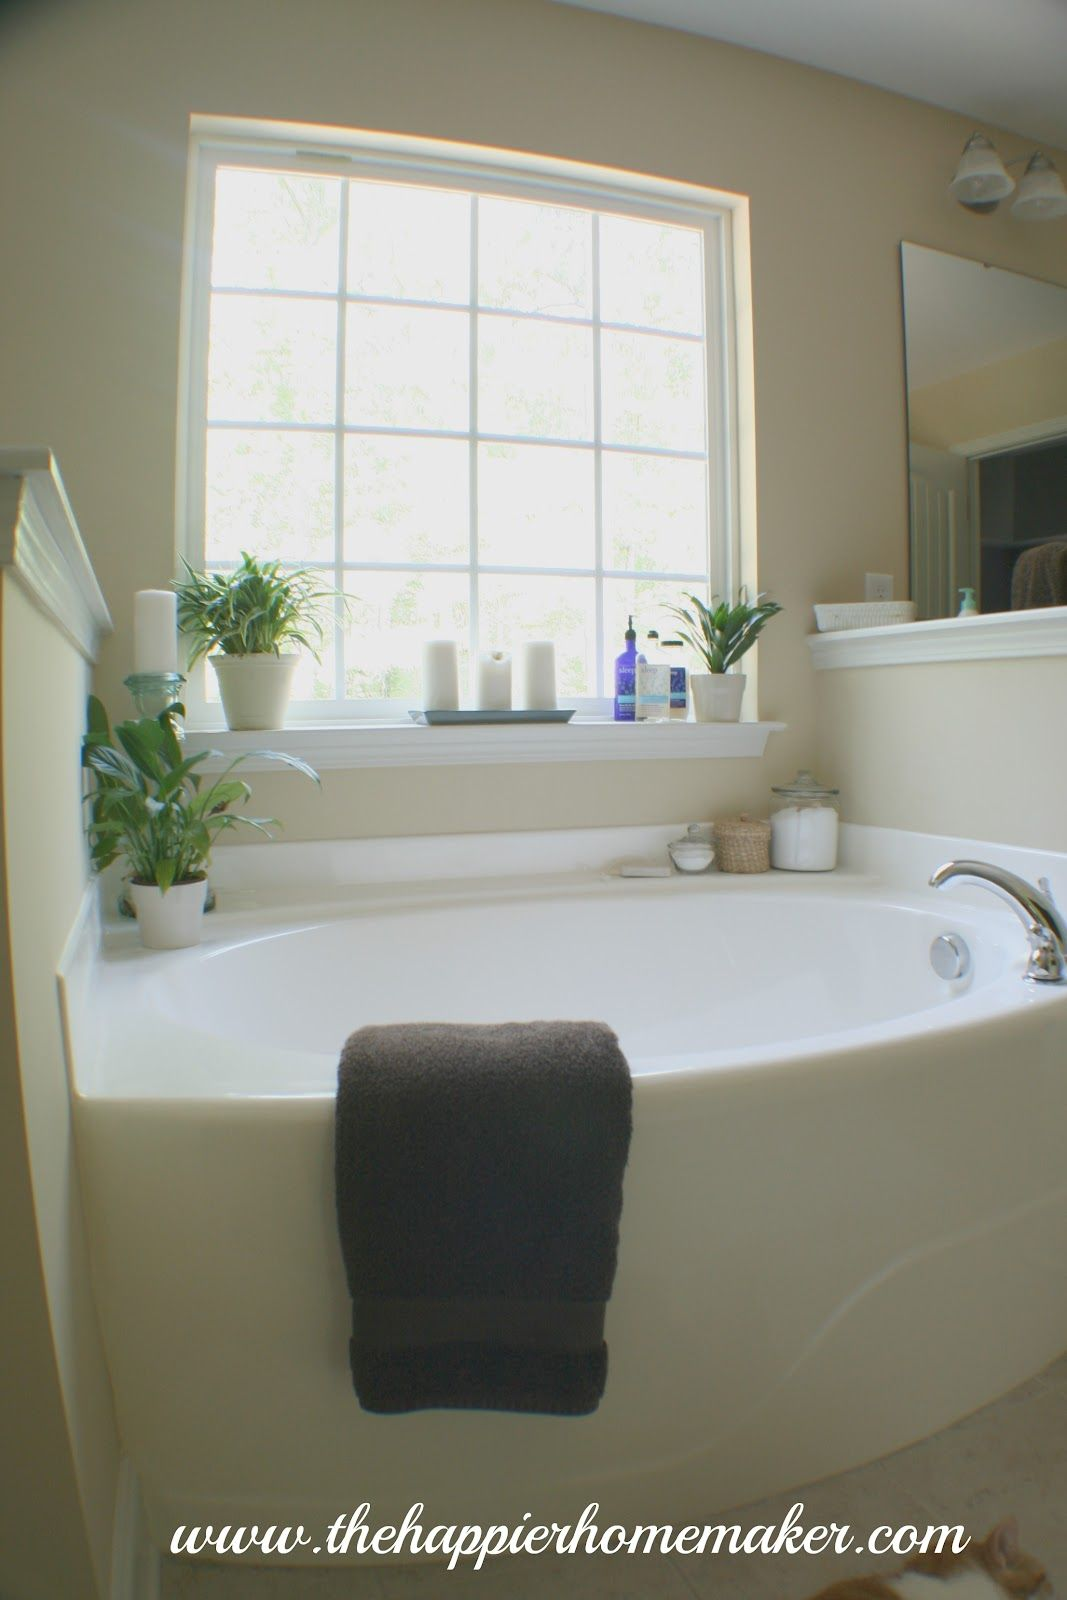 Decorating Around A Bathtub Bathtub Decor Garden Tub Decorating